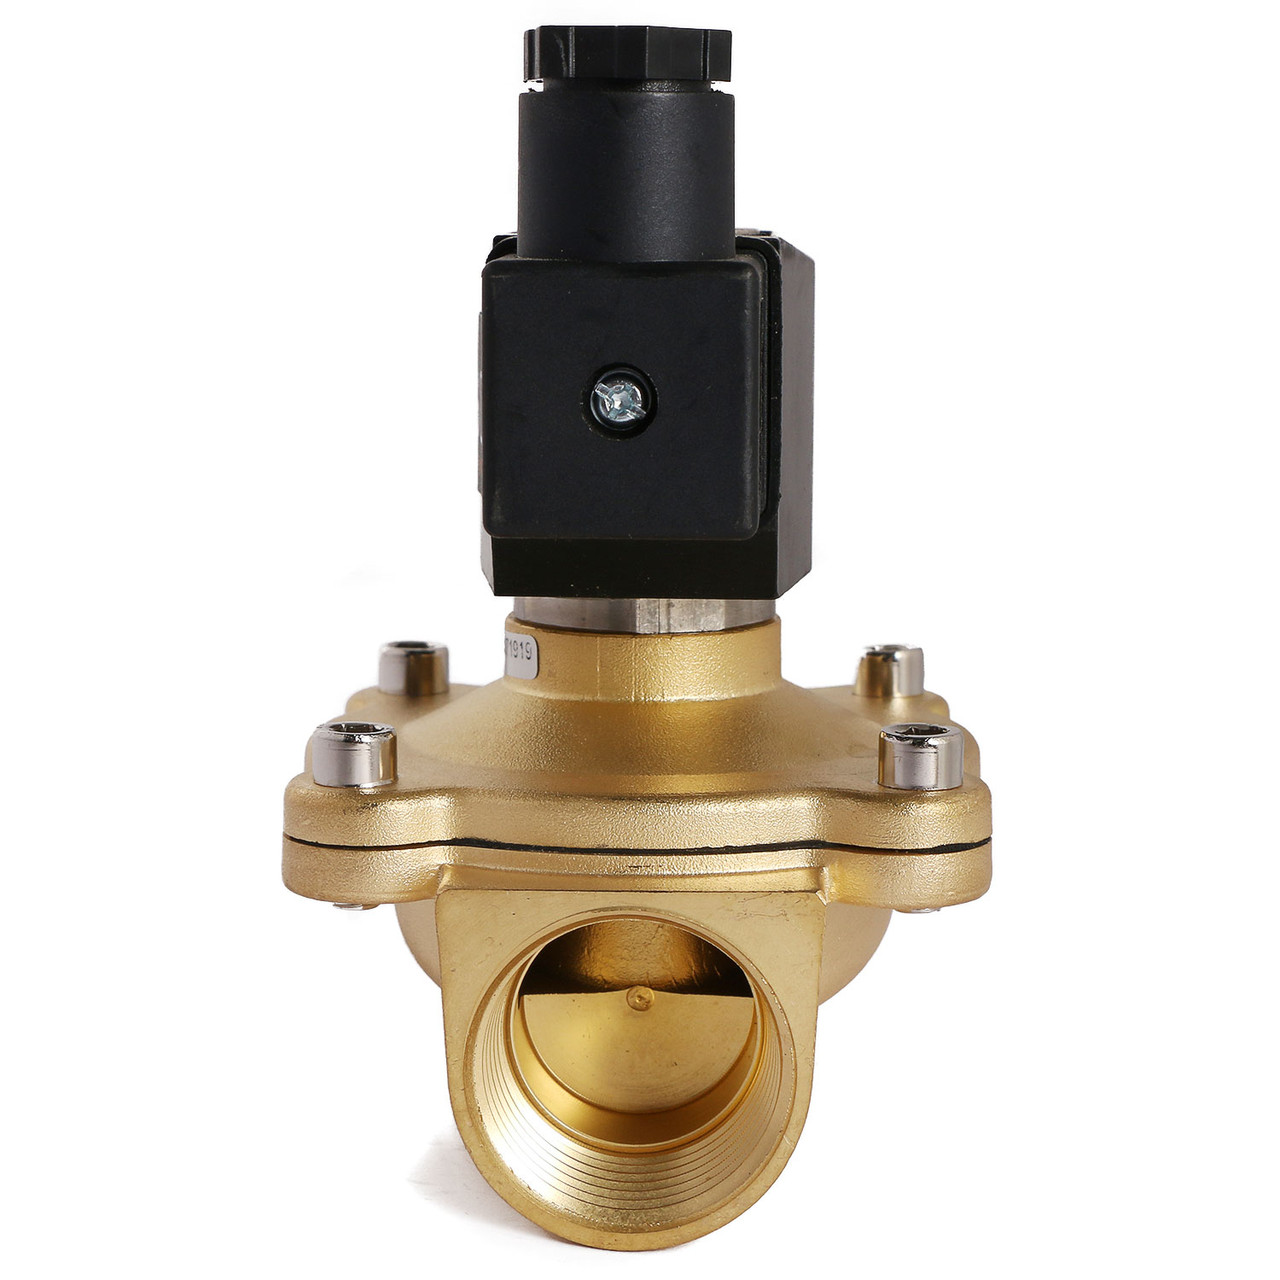 "U.S. Solid 1"" Brass Electric Solenoid Valve 12V DC Normally Closed VITON Air Water Oil Fuel"